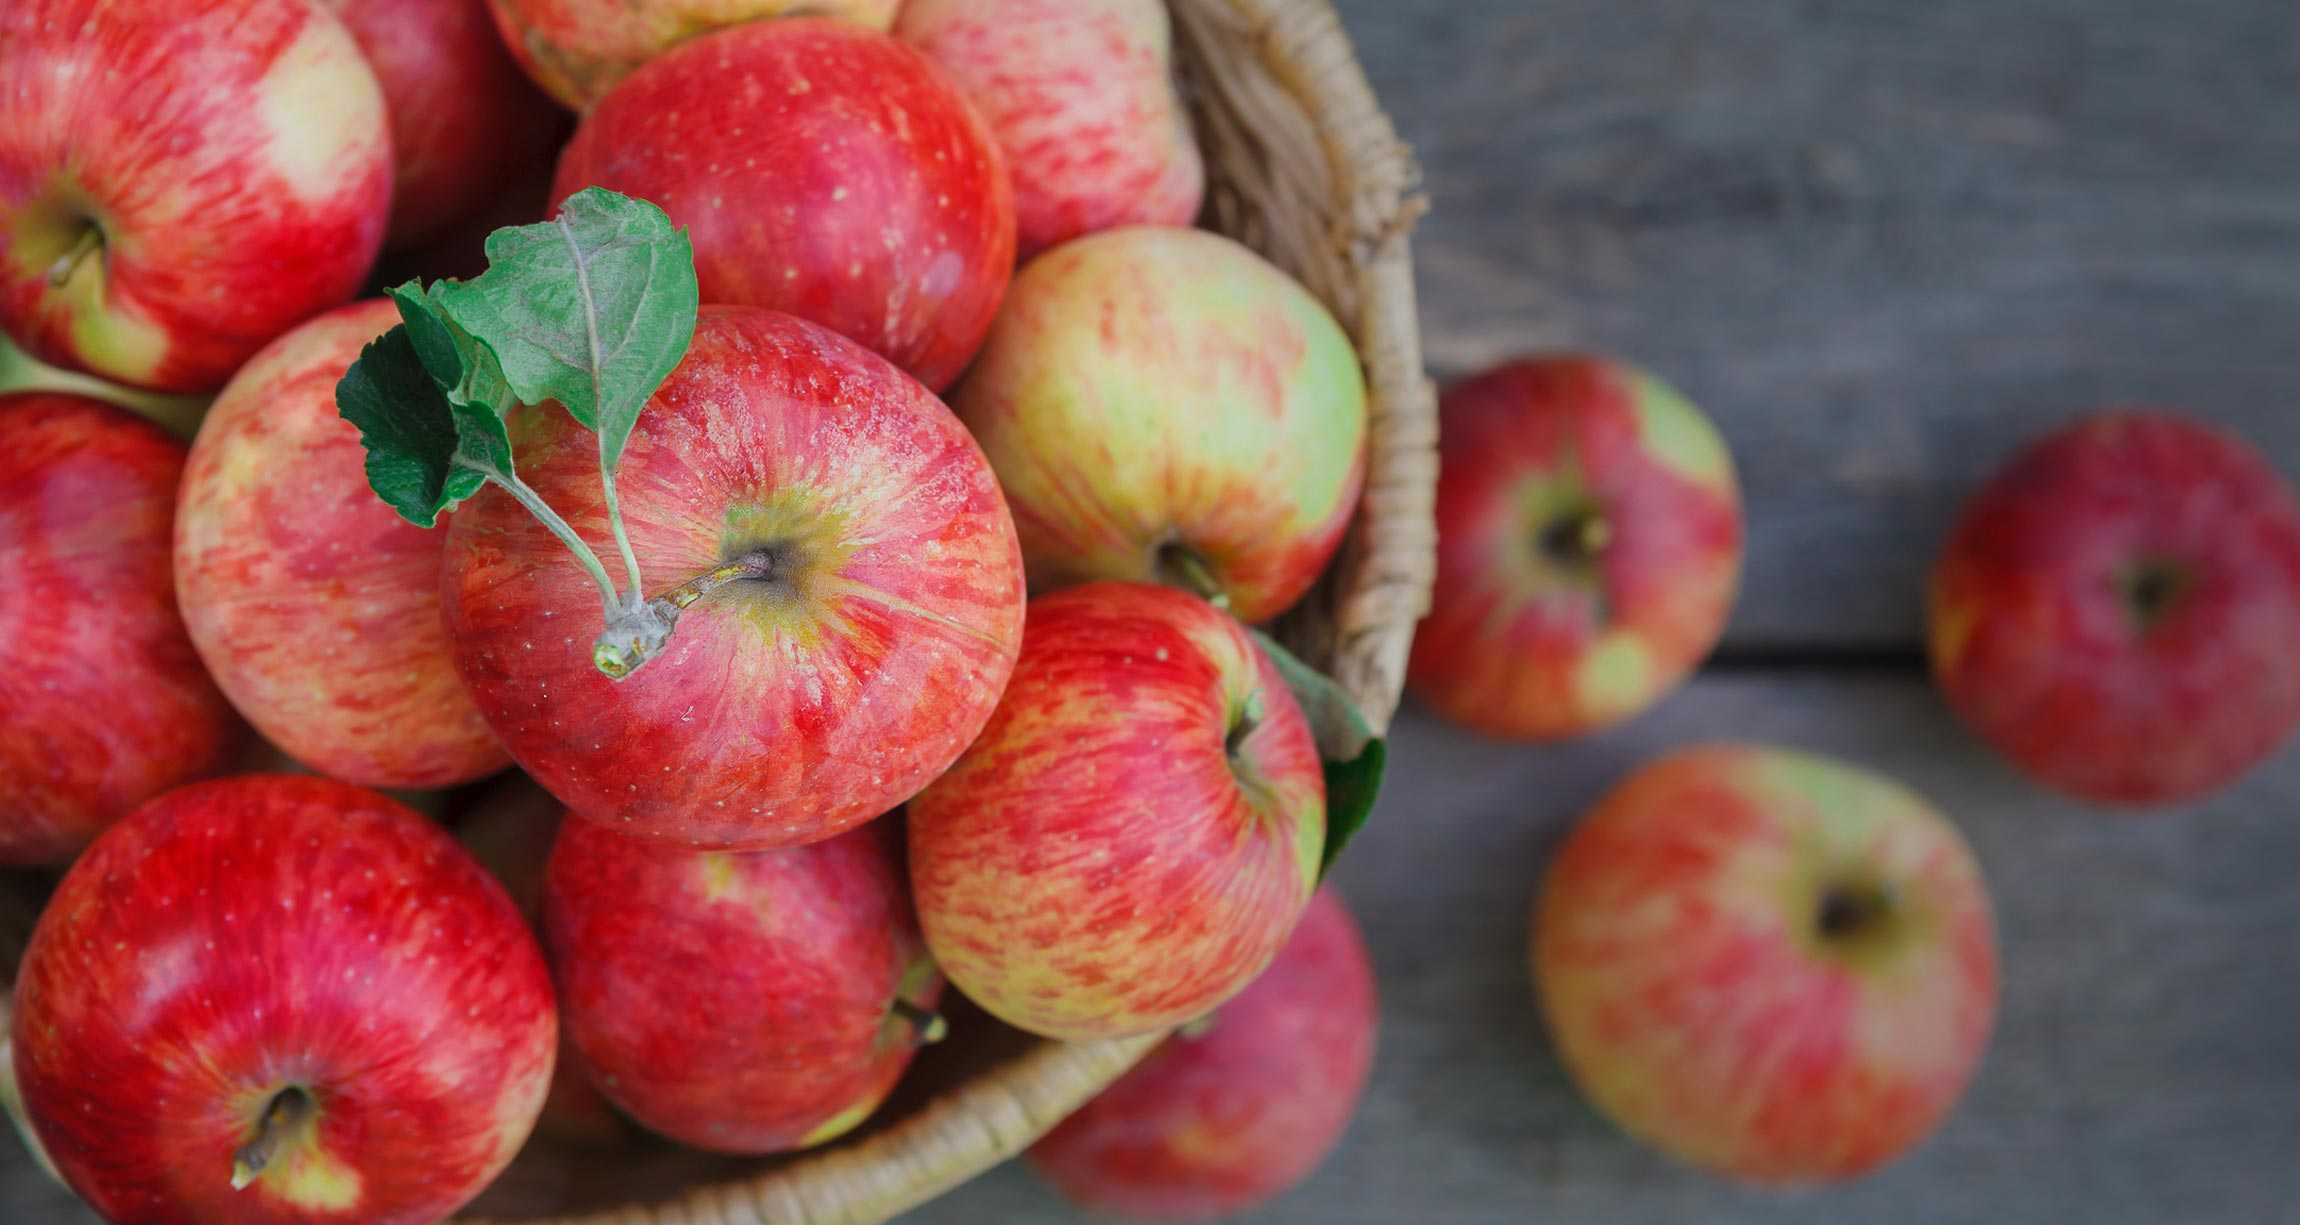 The Top 4 Reasons to Eat Apples images